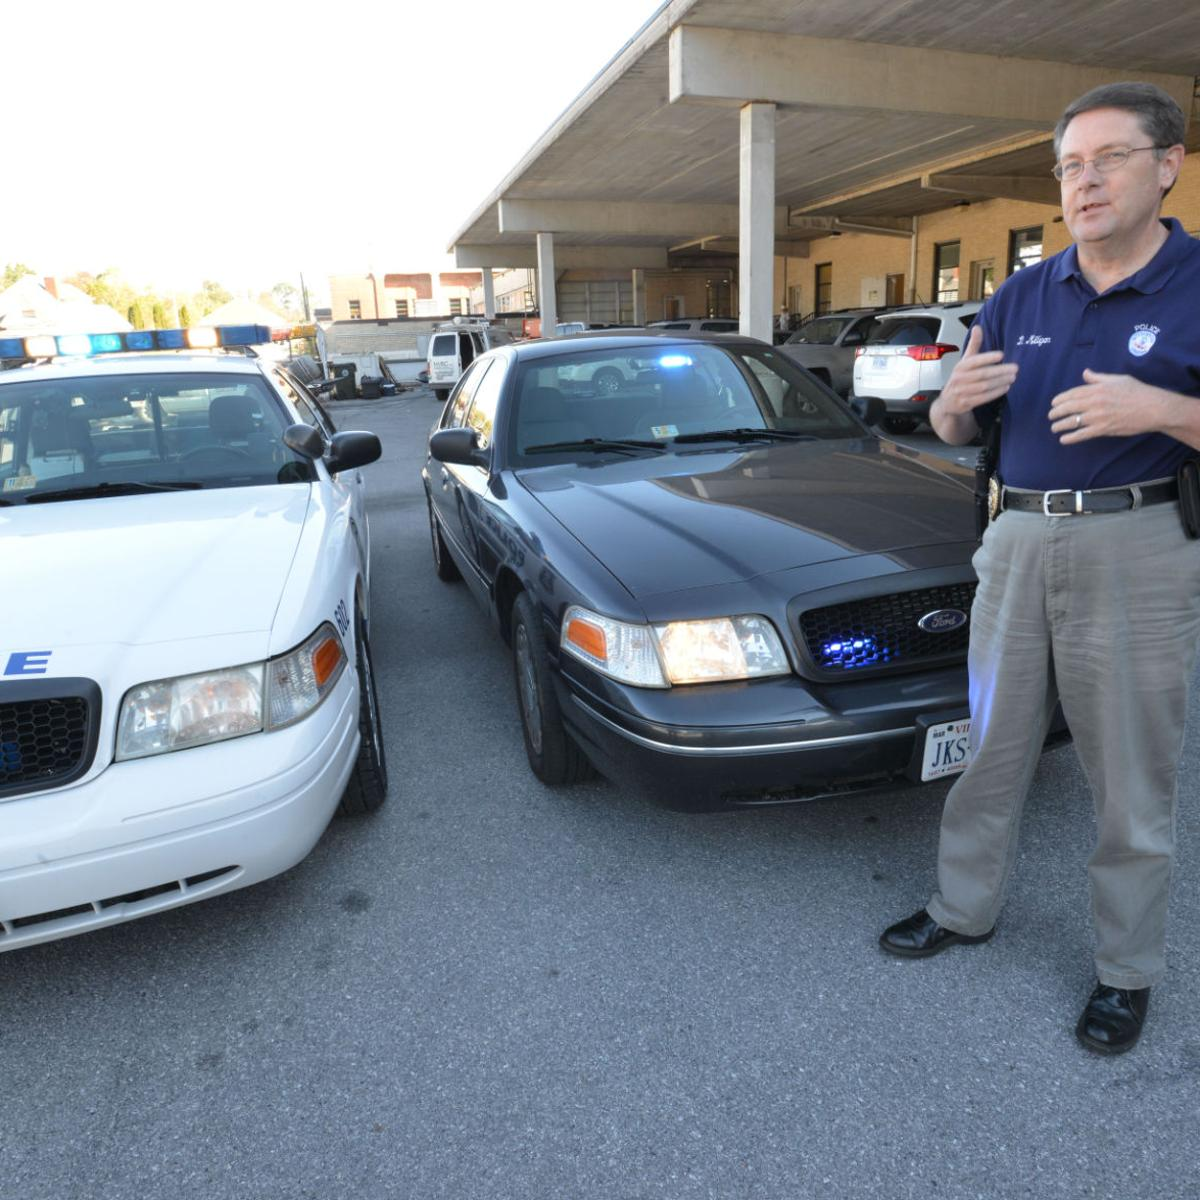 Police provide safety tips for drivers on stopping for